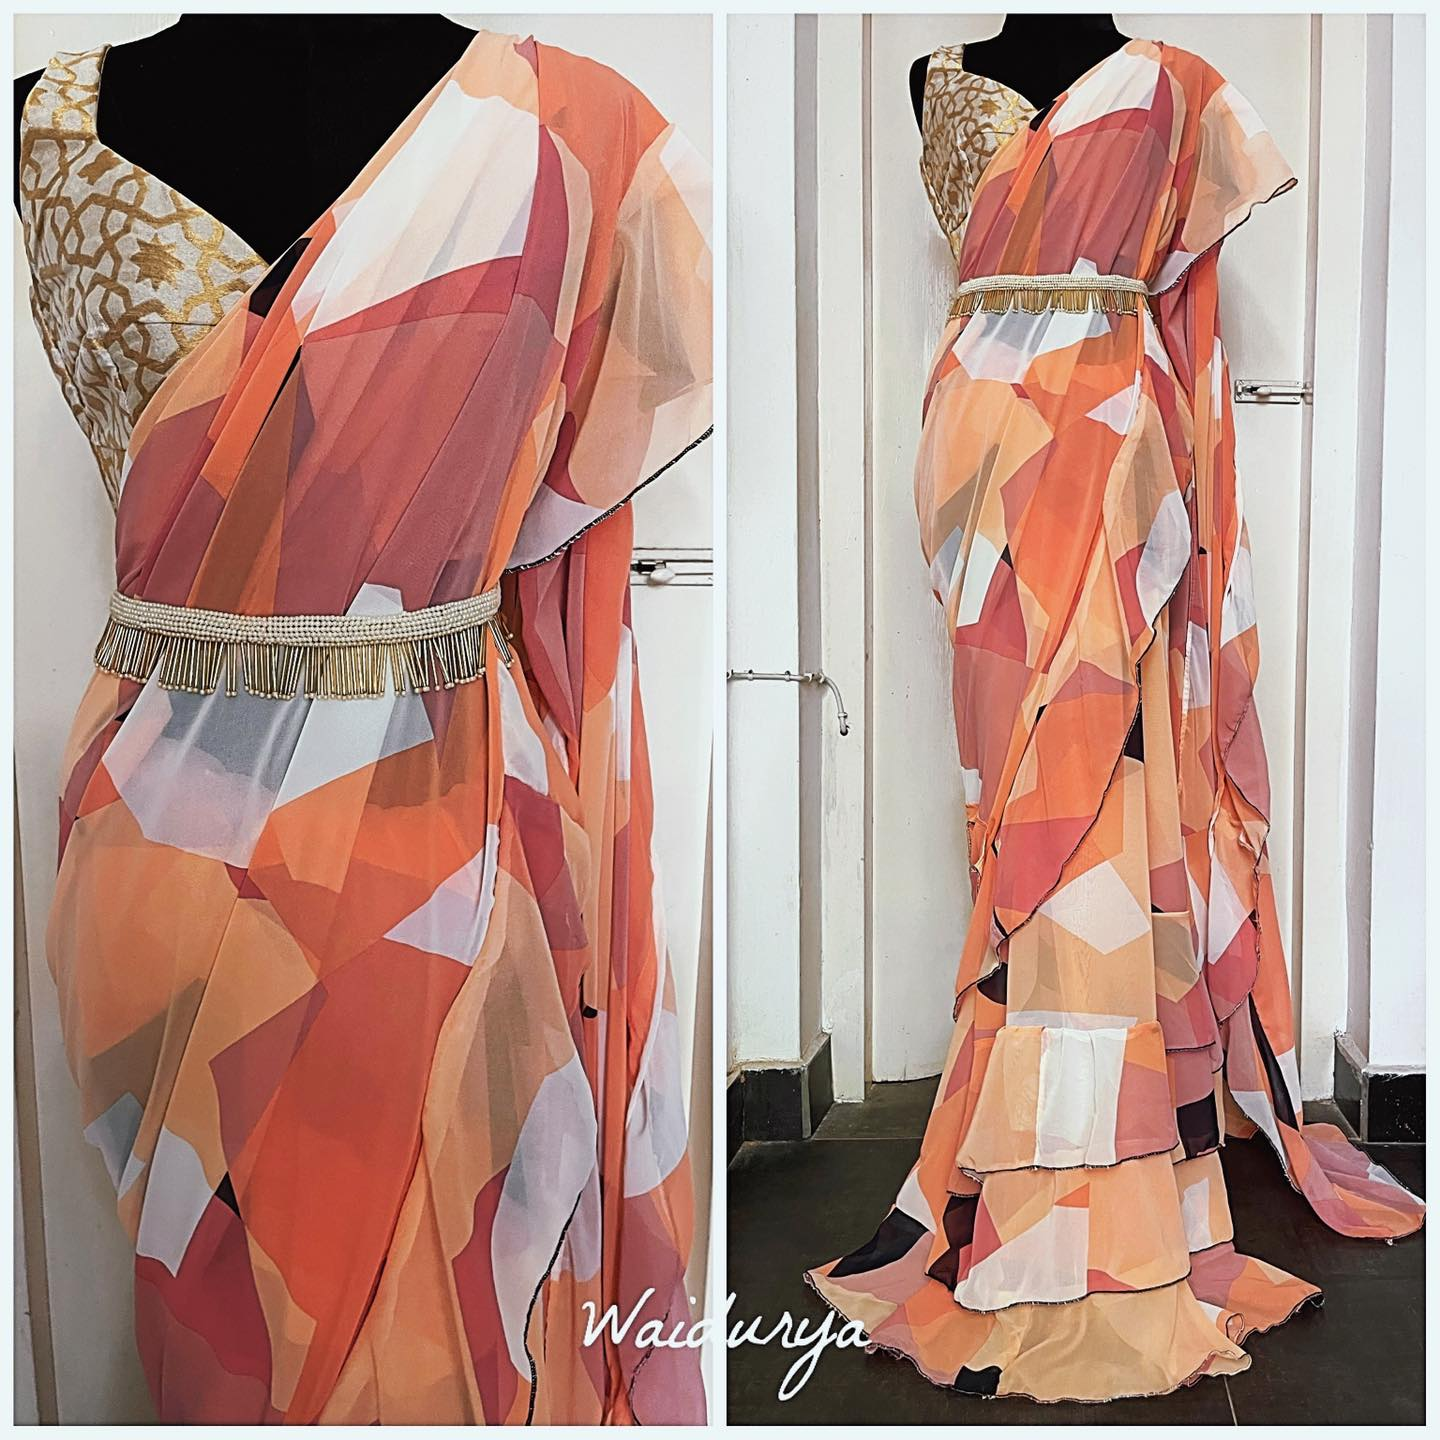 Beautiful georgette sari in a blend of pastel hues in a geometric design makes it modern and fresh! It is fully tailored in a layered ruffle design. The blouse is a ode to our Indian heritage with a geometric design ivory and gold silk brocade fabric.  2021-06-11